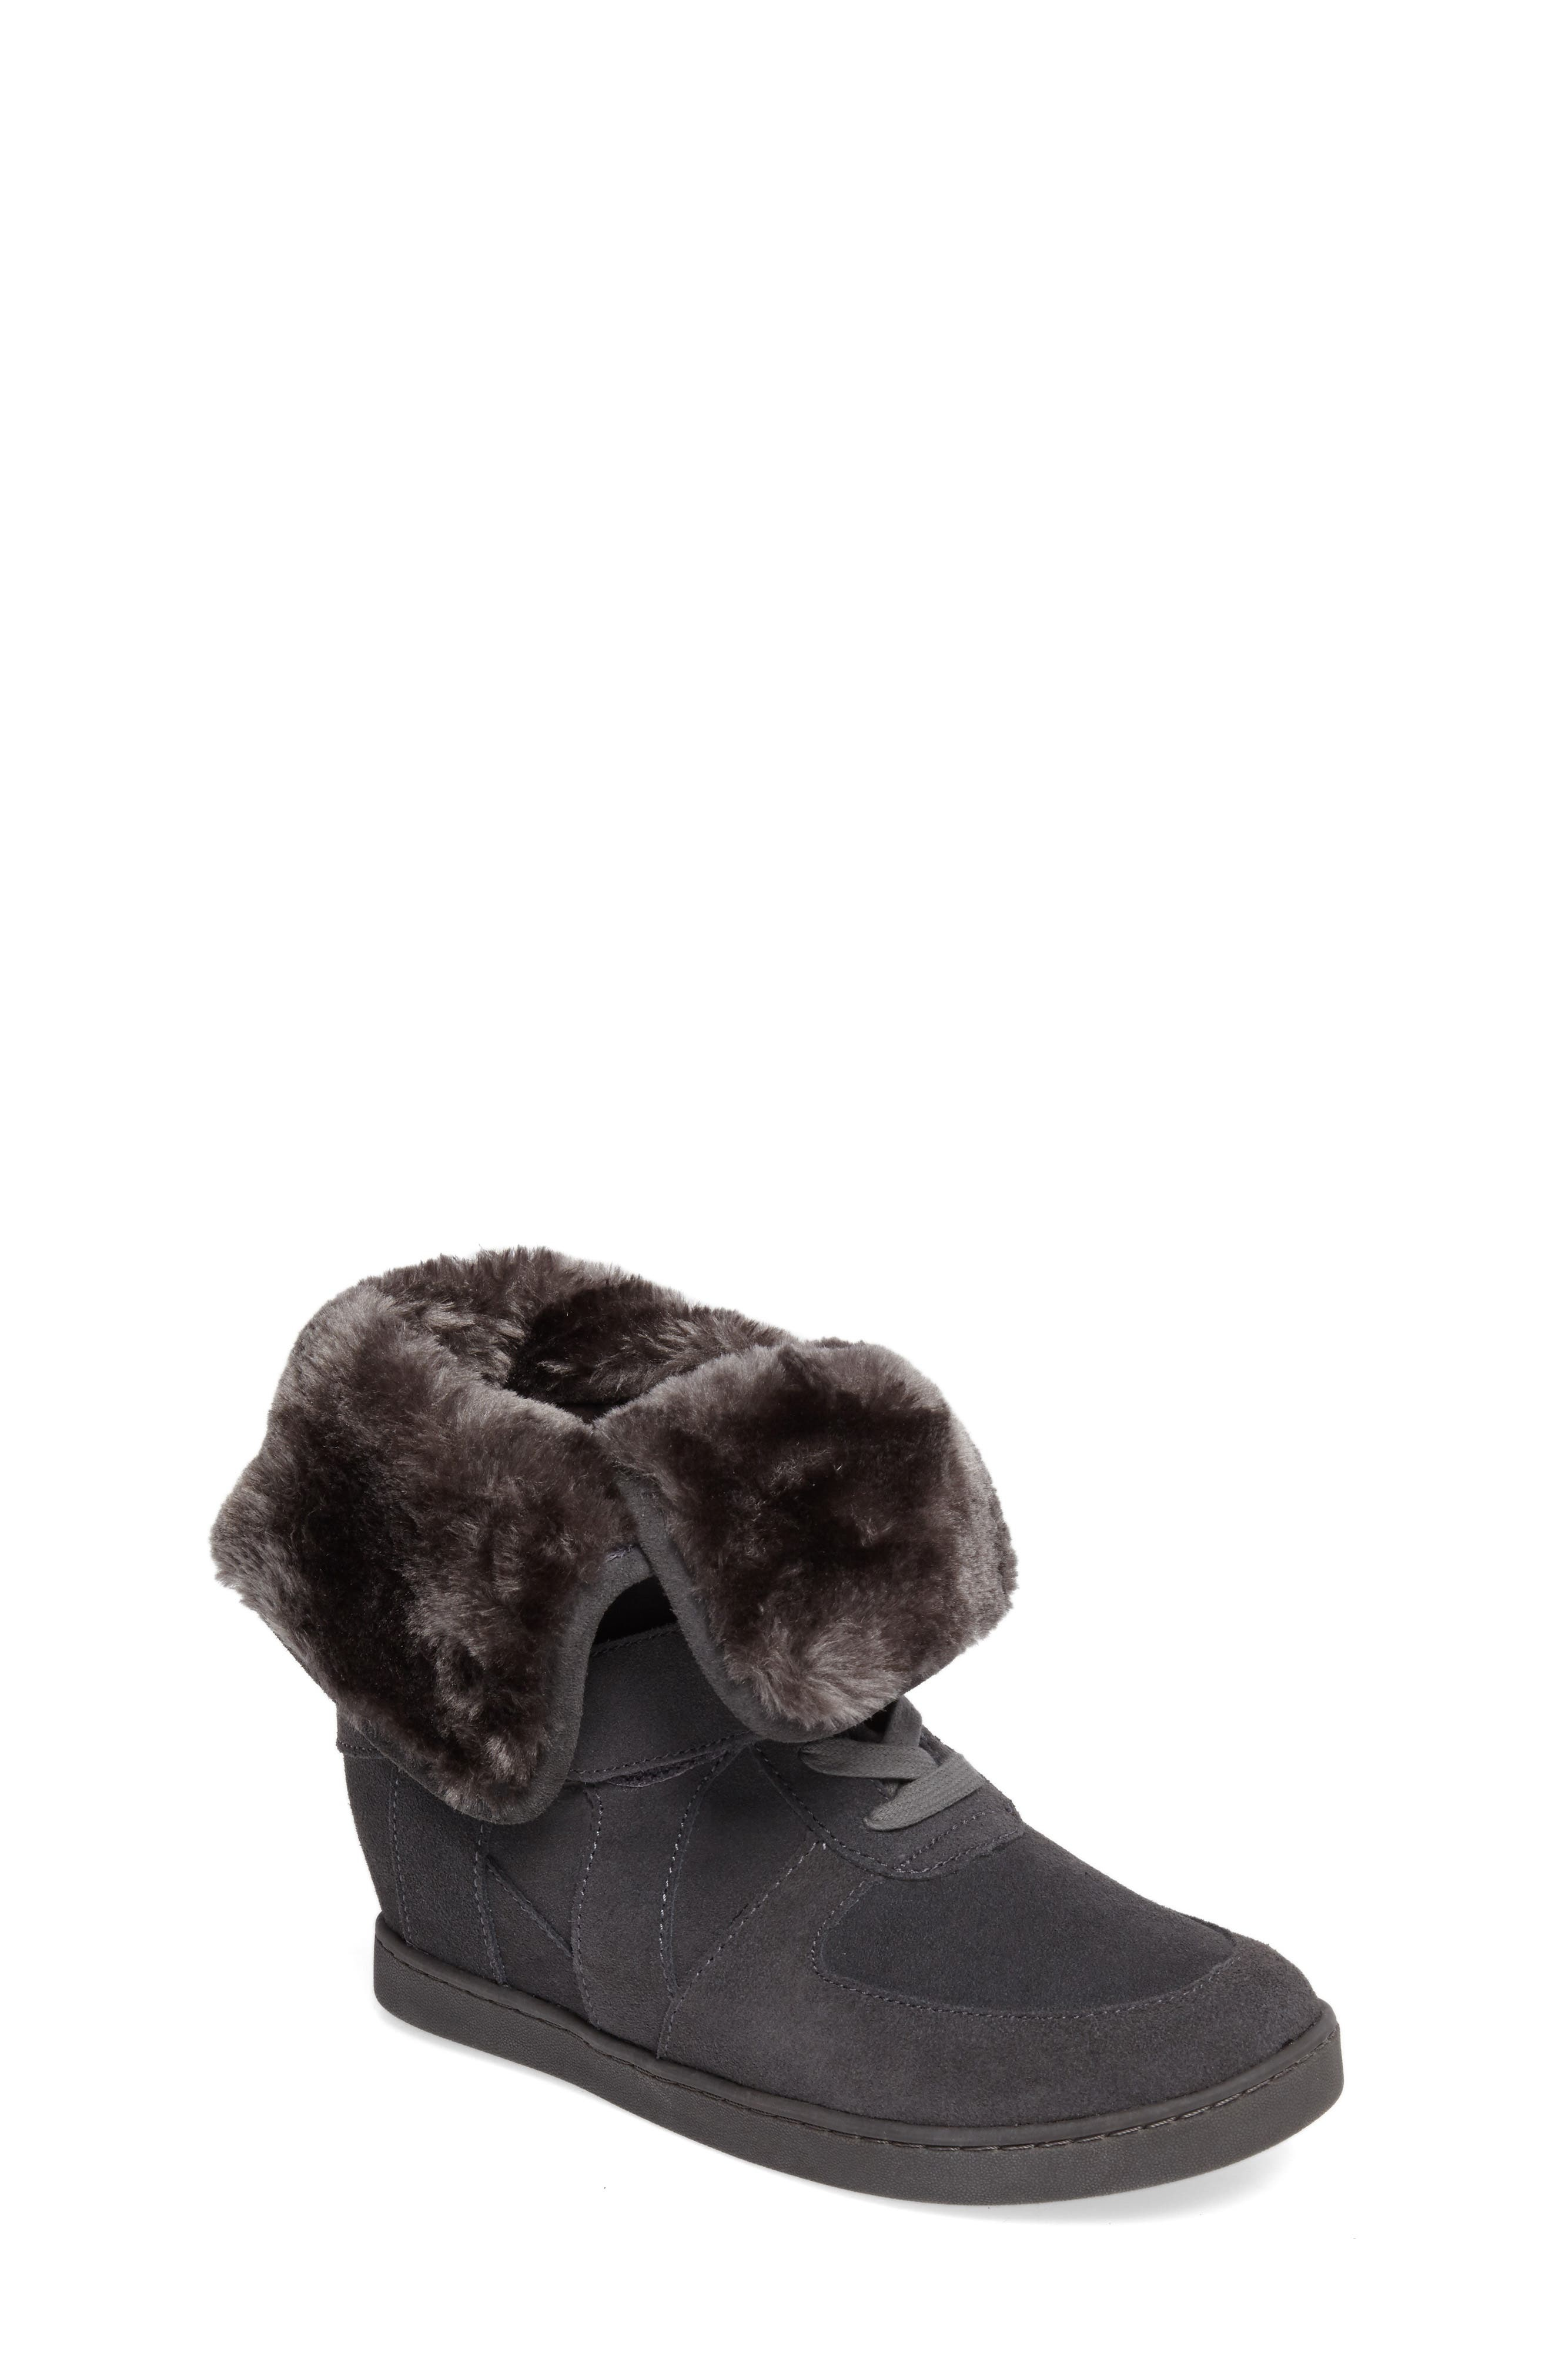 Alternate Image 1 Selected - Ash Boogie Beaver Faux Fur Cuffed Bootie (Toddler, Little Kid & Big Kid)